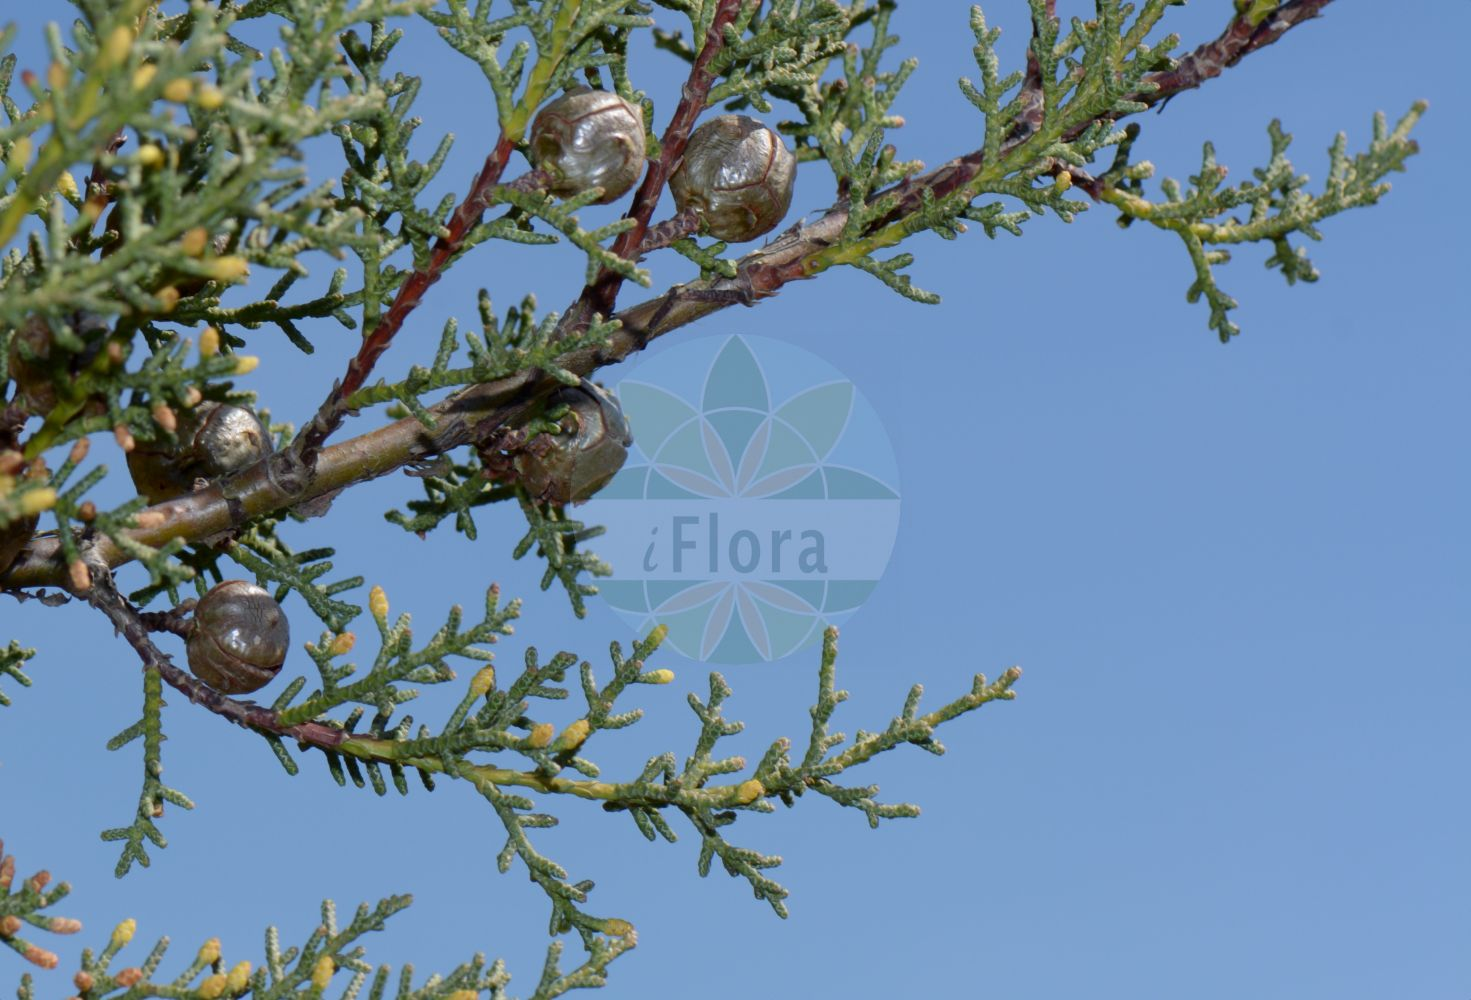 Foto von Cupressus arizonica. Das Bild zeigt Zweig, Blatt, Bluete und Zapfen. Das Foto wurde in Goettingen, Niedersachsen, Deutschland aufgenommen. ---- Photo of Cupressus arizonica.The image is showing twig, leaf, flower and cone.The picture was taken in Goettingen, Lower Saxony, Germany.(Cupressus arizonica,Cupressus,Cupressaceae,Zypressengewaechse,Cypress family,Zweig,Blatt,Bluete,Zapfen,twig,leaf,flower,cone)